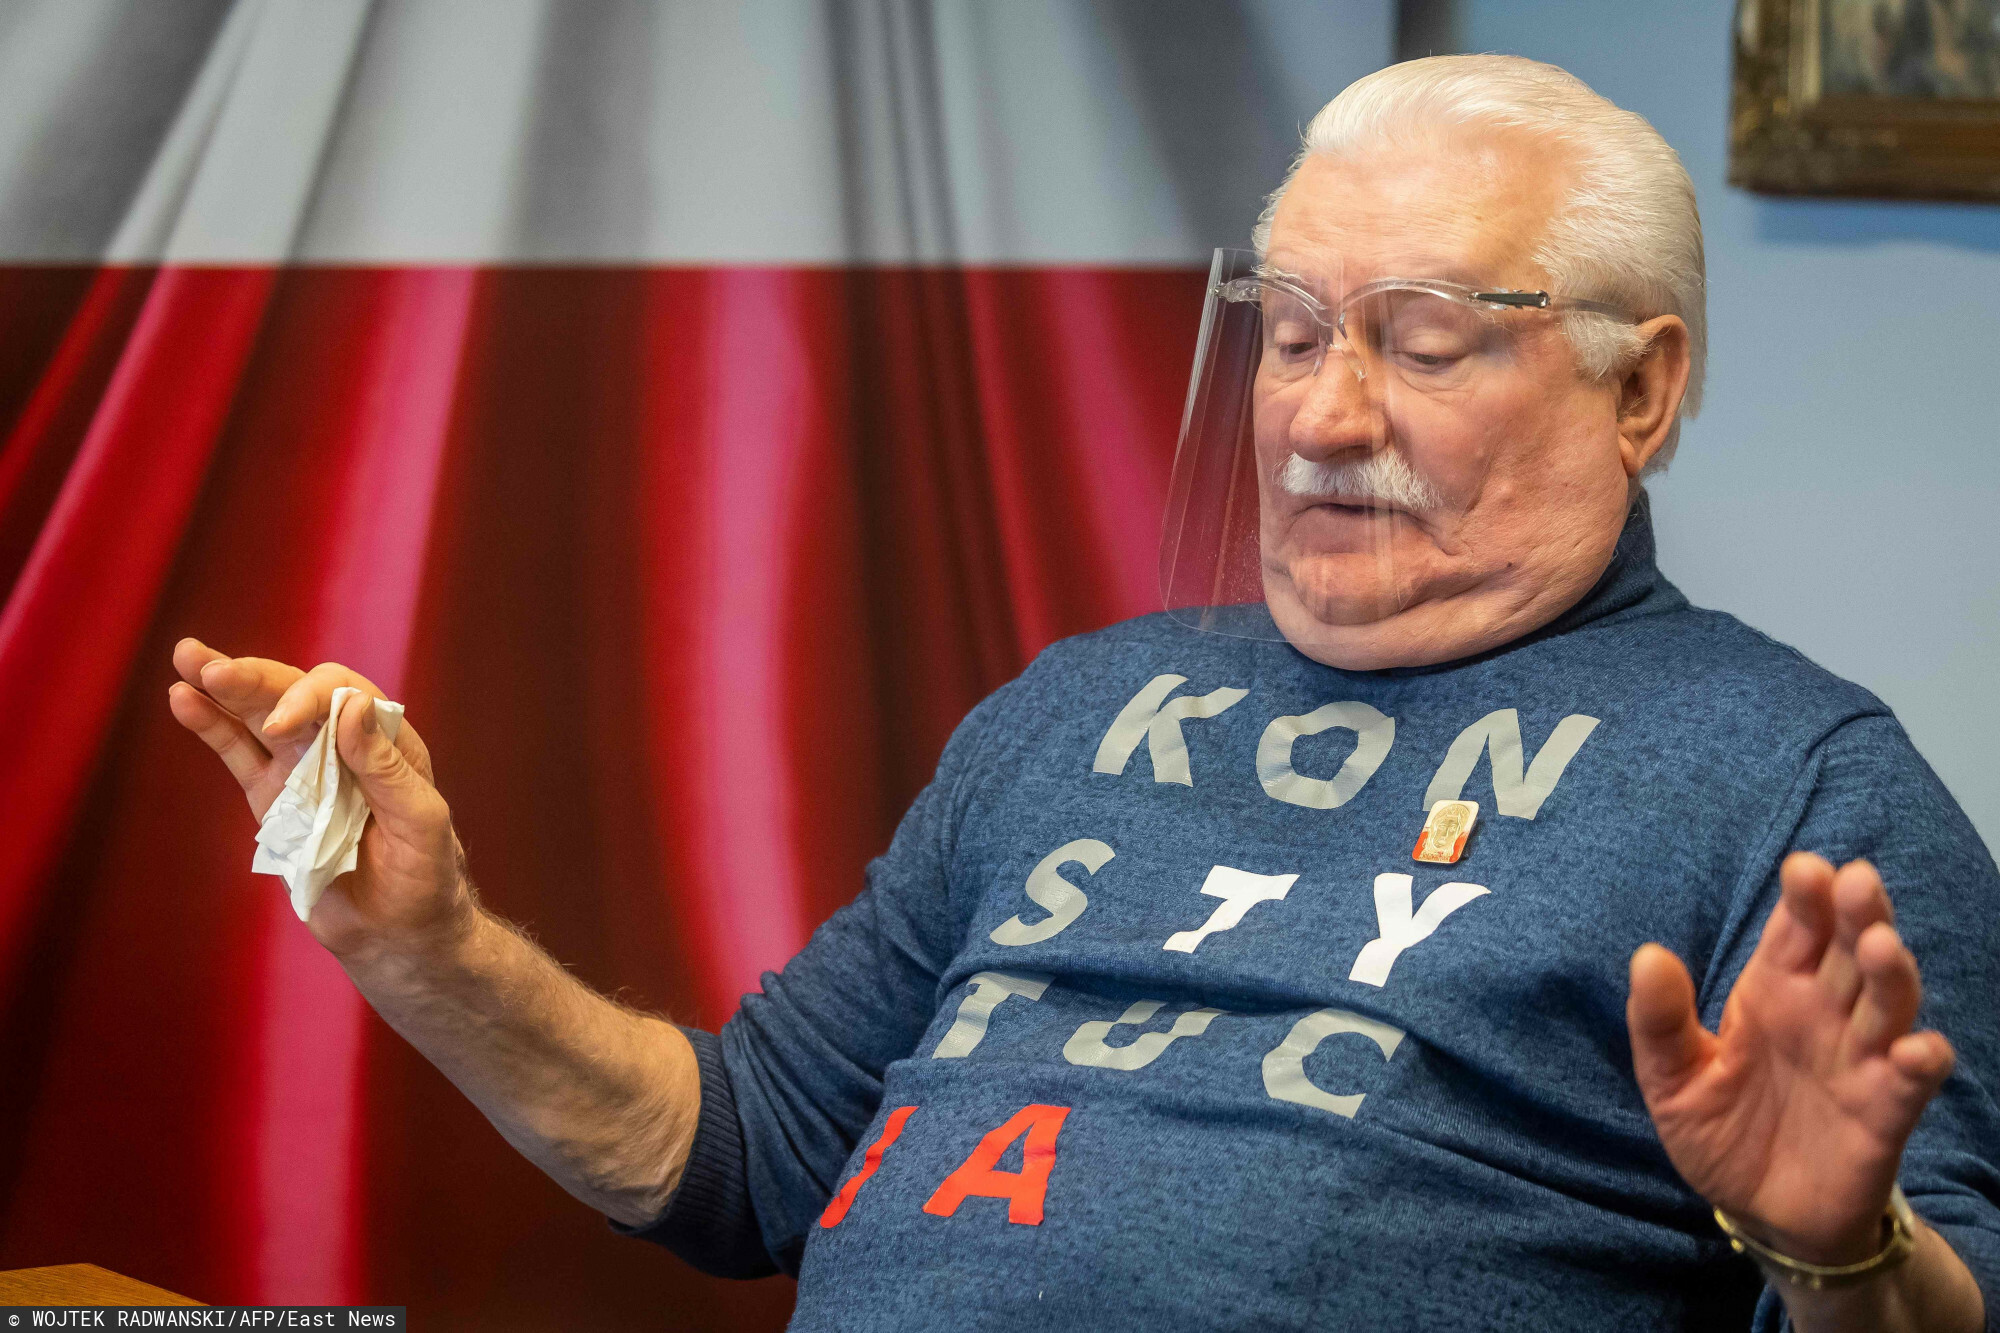 """Lech Walesa, former president of Poland and Nobel Prize for peace laureate, is pictured on February 3, 2021 during an interview in his office in Gdansk, Poland. - Polish freedom icon and Nobel laureate Lech Walesa on Wednesday said Russian opposition figure Alexei Navalny is a """"hero"""" who is well on his way towards deserving the famous peace prize. (Photo by Wojtek RADWANSKI / AFP)"""